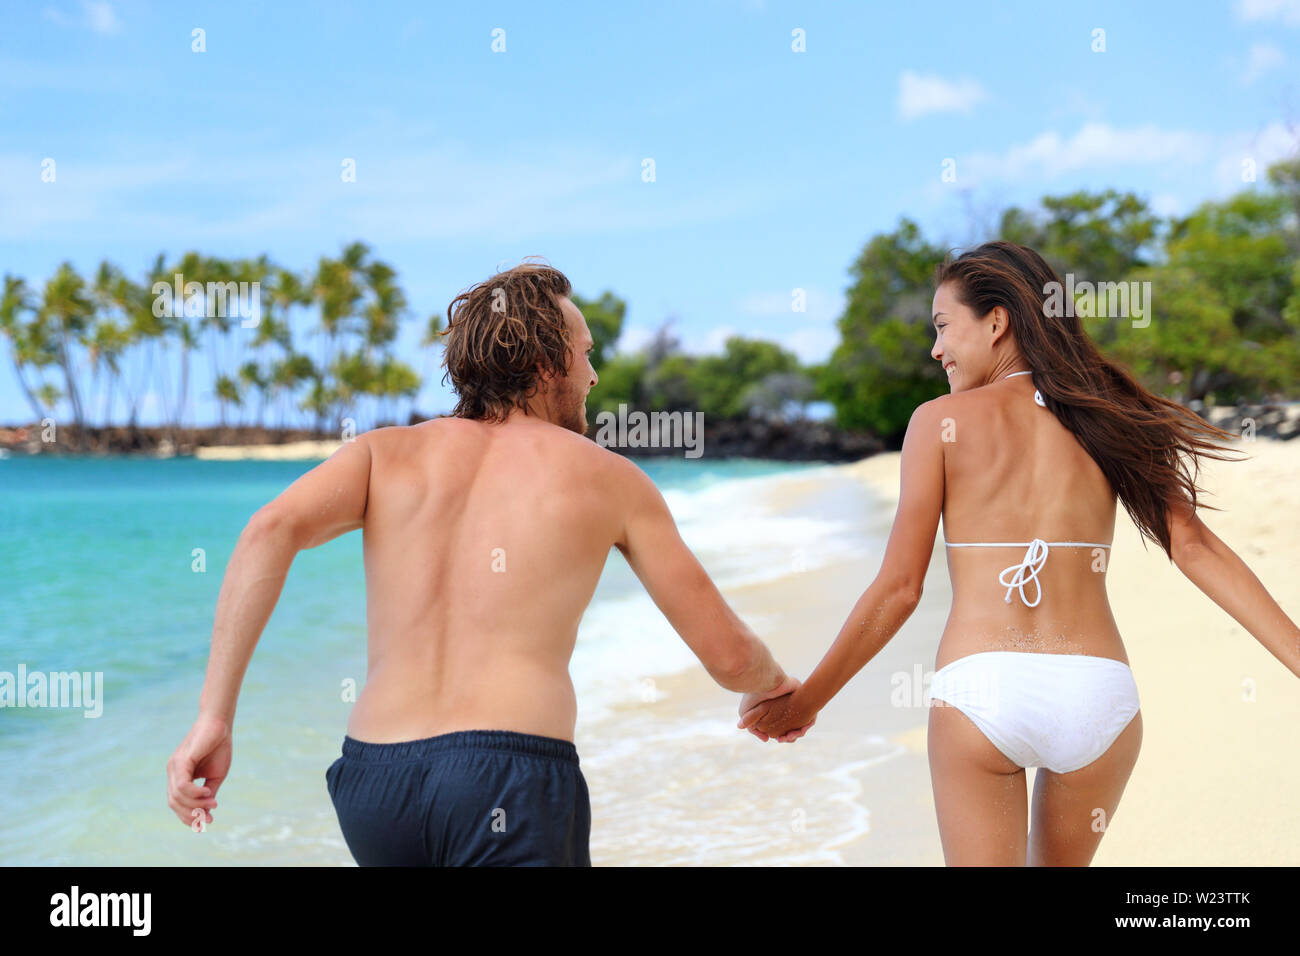 Happy couple holding hands running having fun playful on the beach. Young people from behind playing together on summer travel destination tropical holidays. Trust and relationship concept. - Stock Image